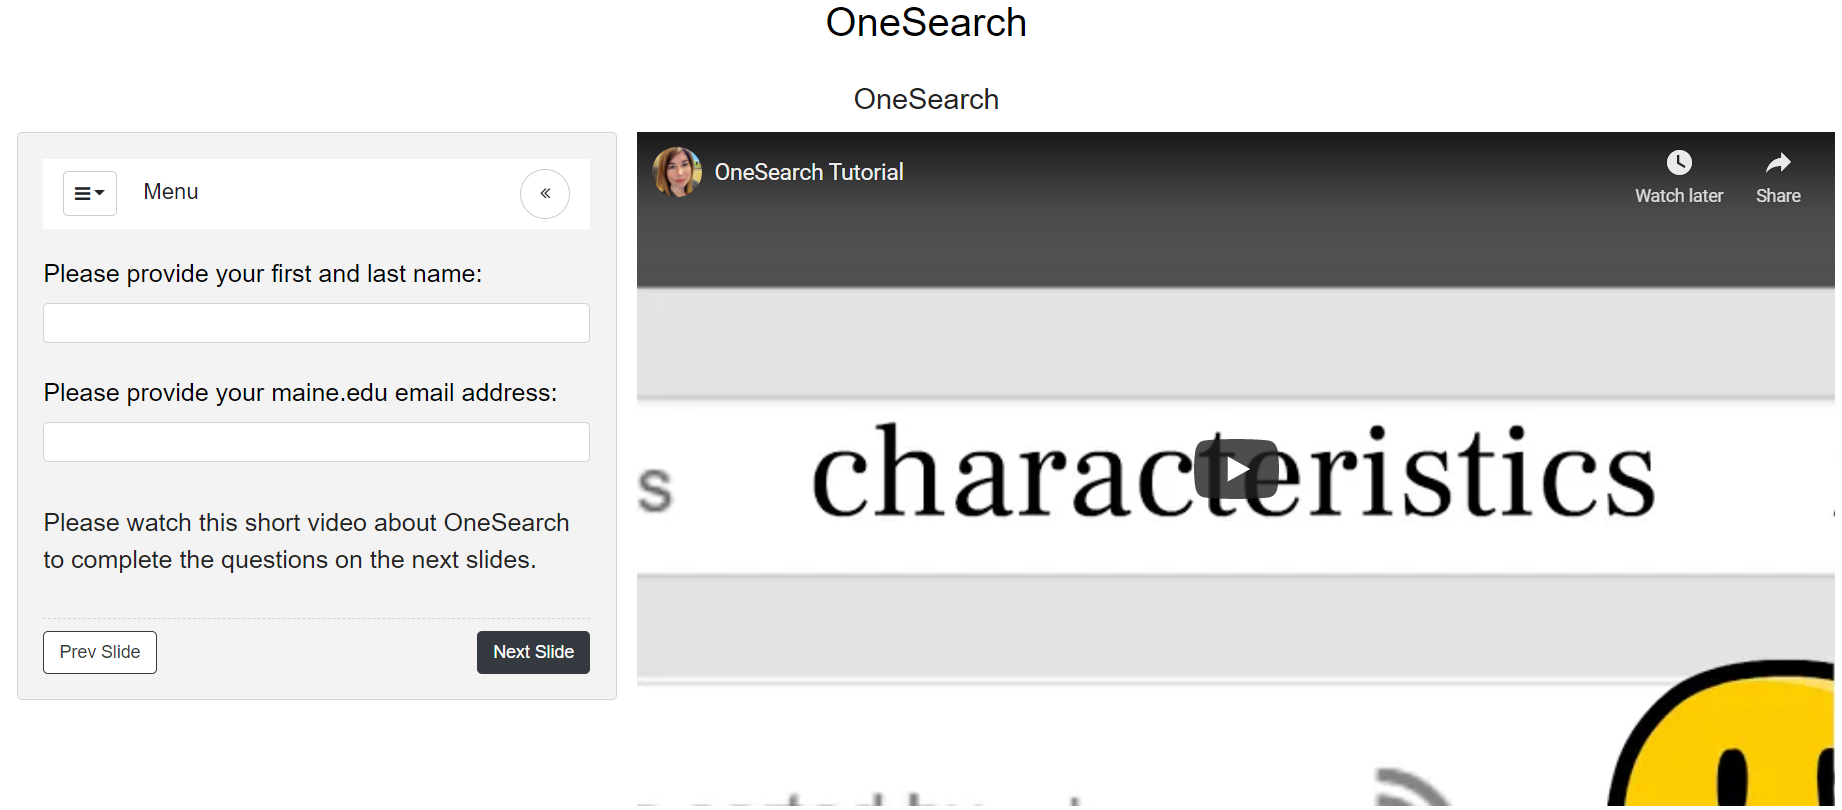 OneSearch Tutorial image